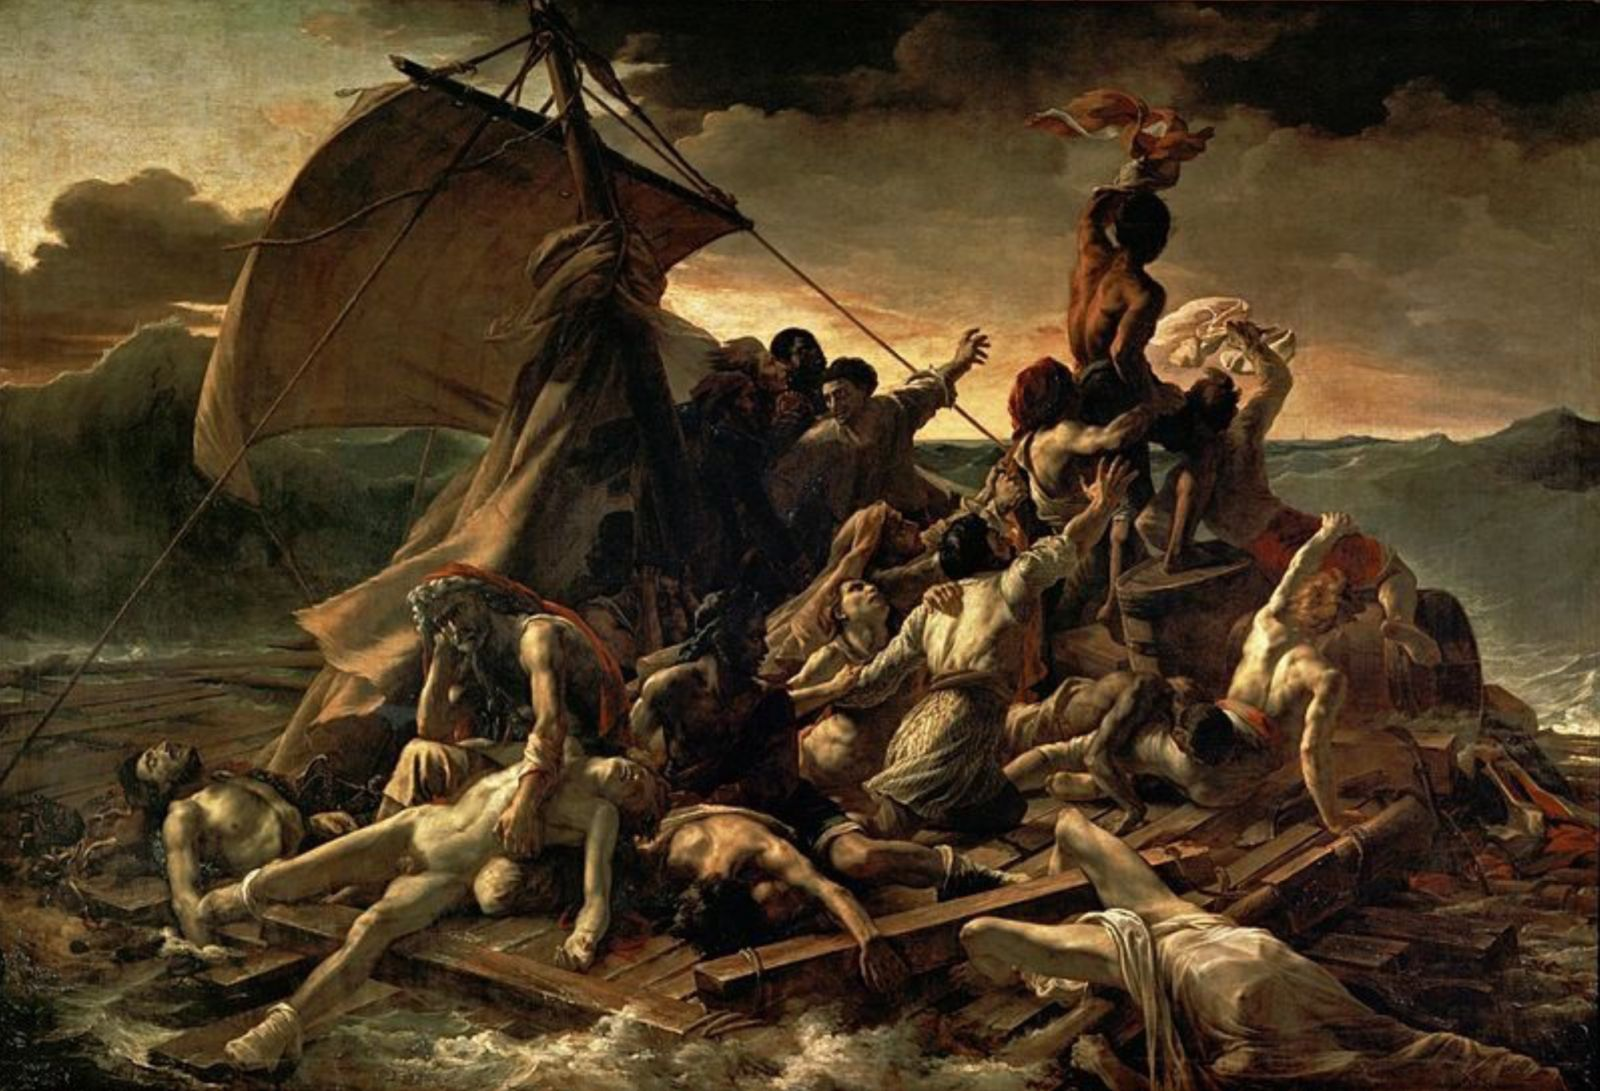 11shipwrecked on a raft.jpg